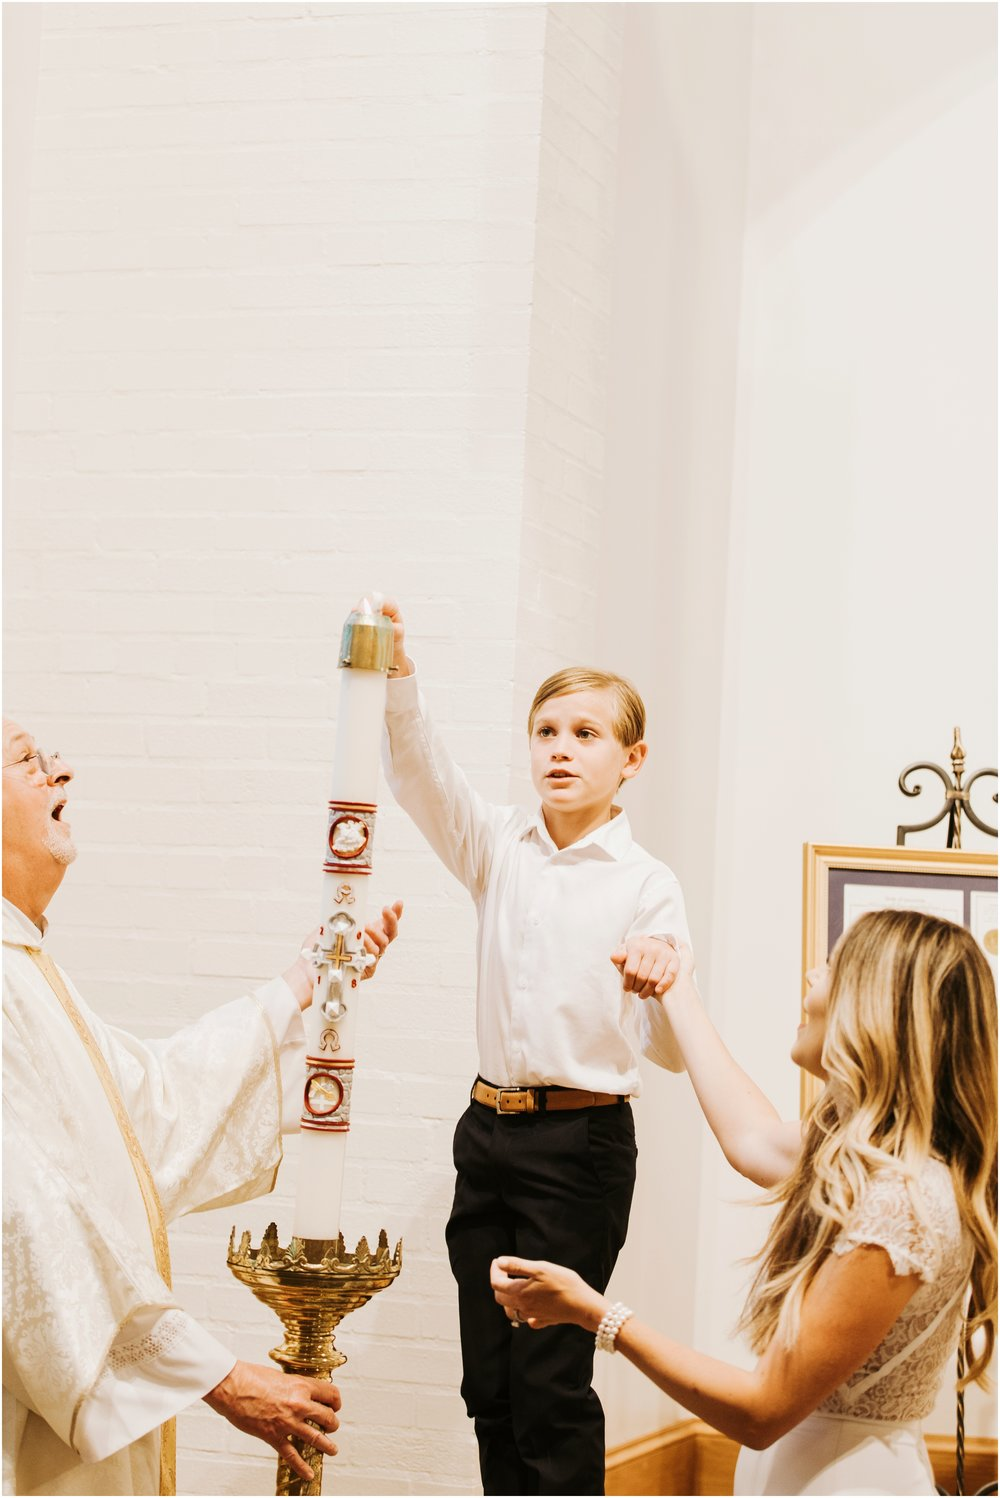 Mire-Blessing-Baptism-Family-2018-June-8601_quaint-and-whim-lifestyle-photographer-louisiana-.jpg